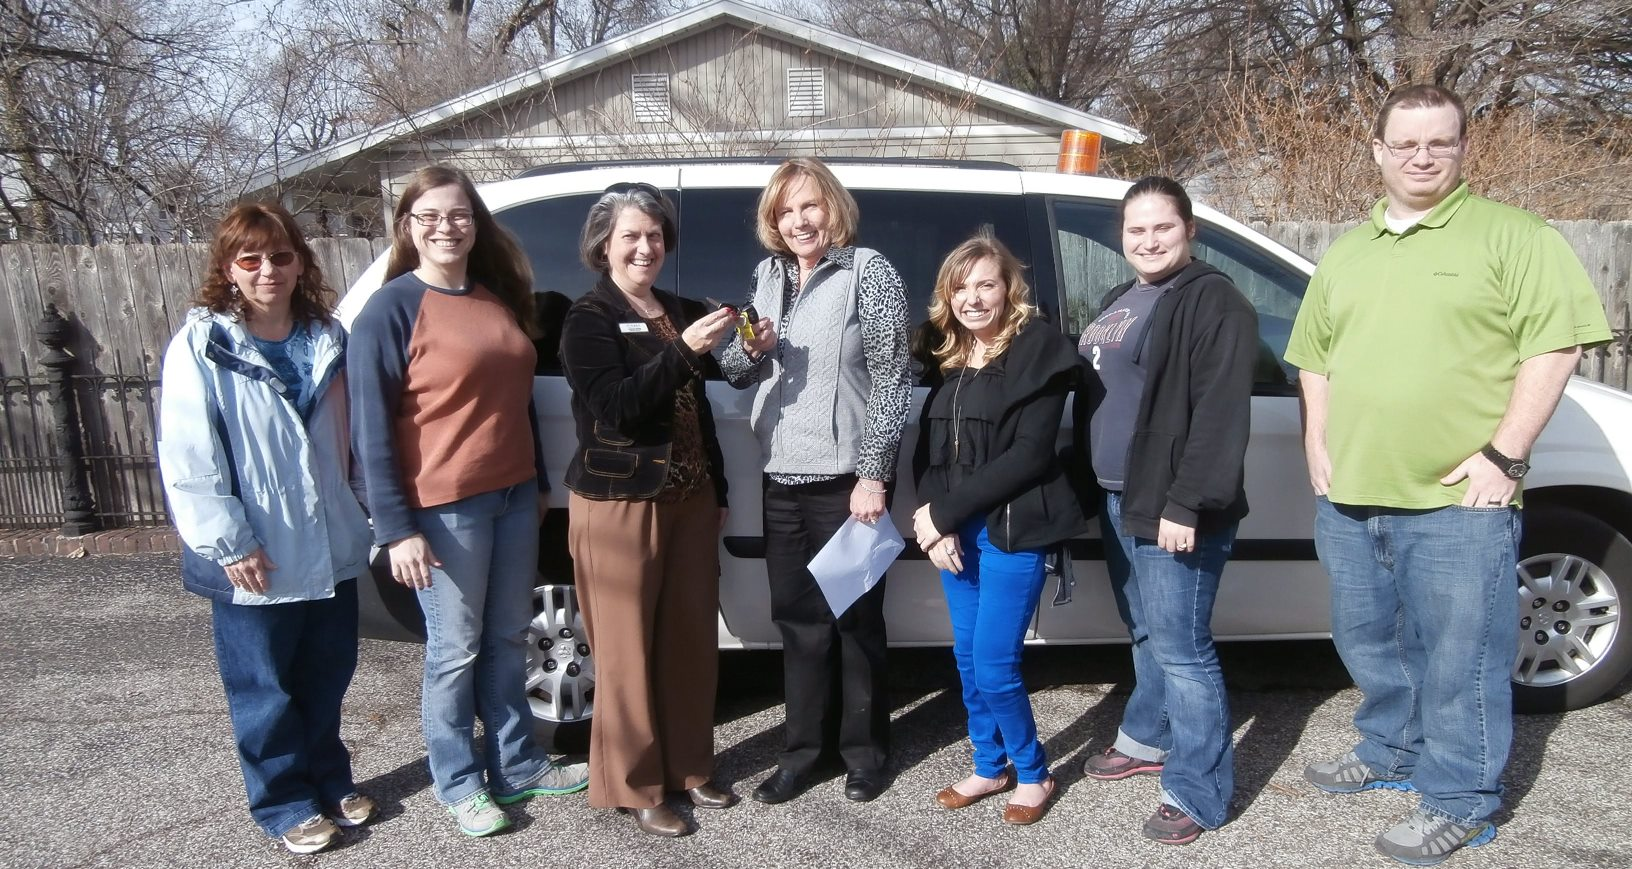 Official receipt of Dodge Caravan donated to Aurora on Feb 20,2014